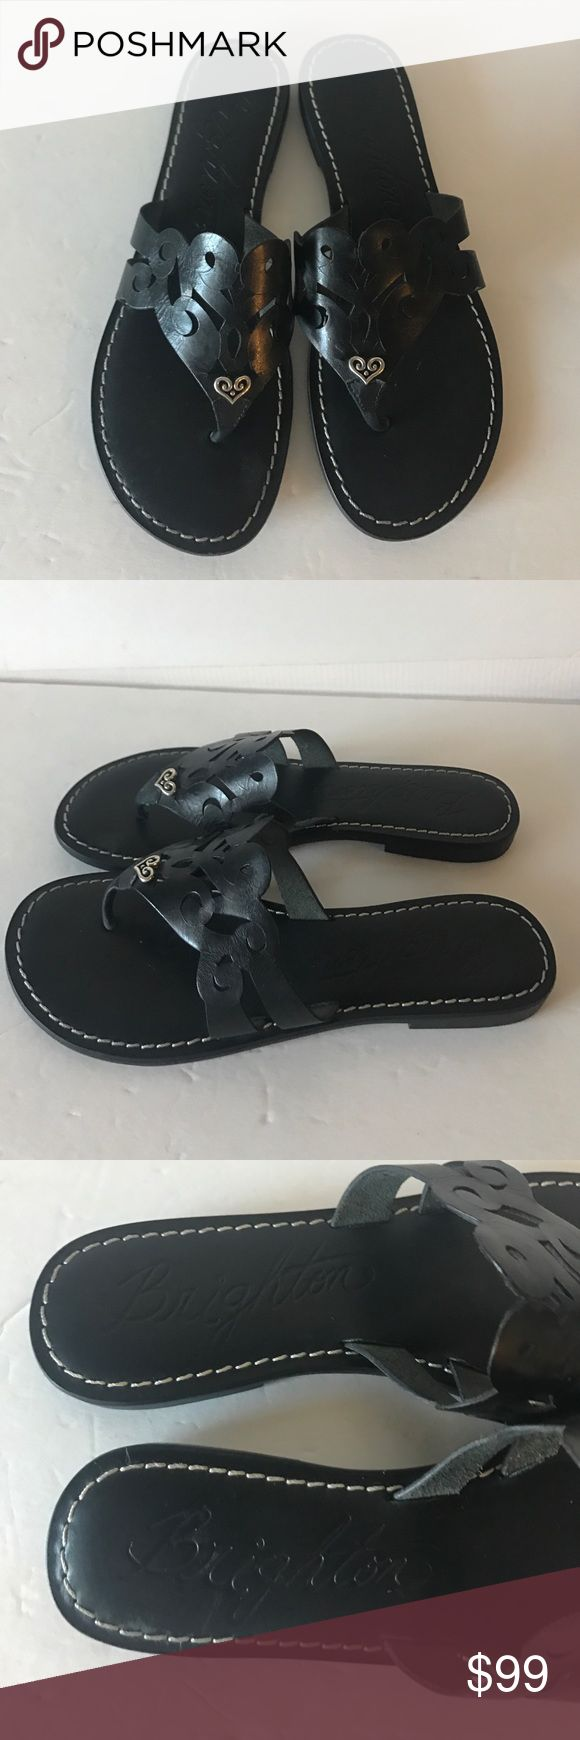 Brighton Alegre black sandals!!! New! Size 8M Gorgeous perfect for Spring! Brighton black leather  allegre sandals size 8M! Never worn!!! Cute silver metal plated heart embellishment in front! ❤❤❤ Brighton Shoes Sandals